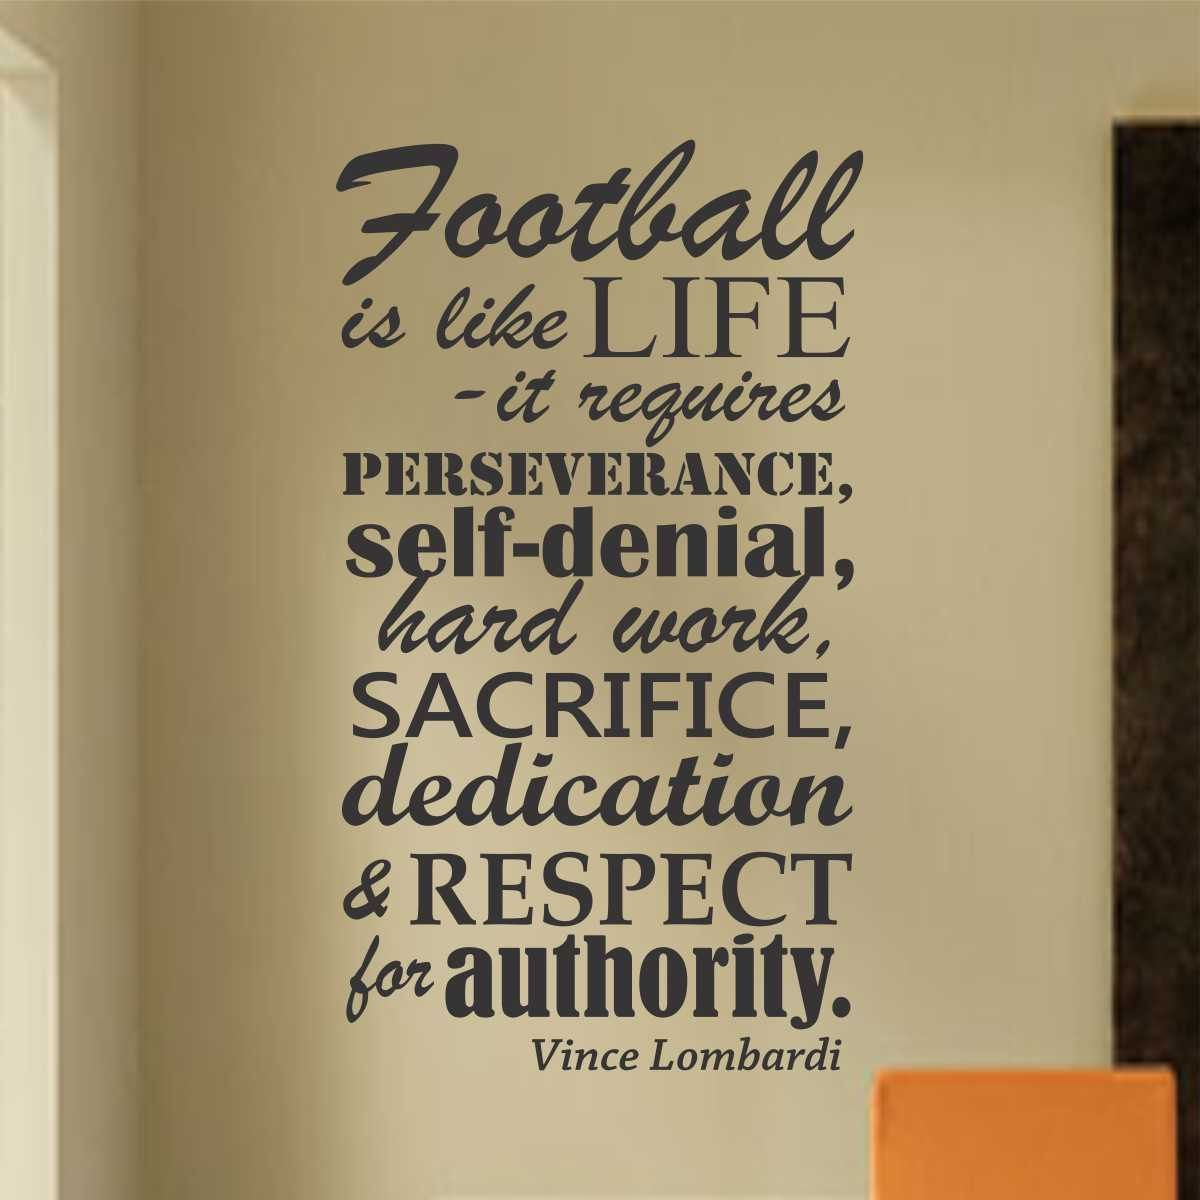 Baseball Quotes About Life Vinyl Wall Lettering Football Is Like Life Vince Lombardi Quotes